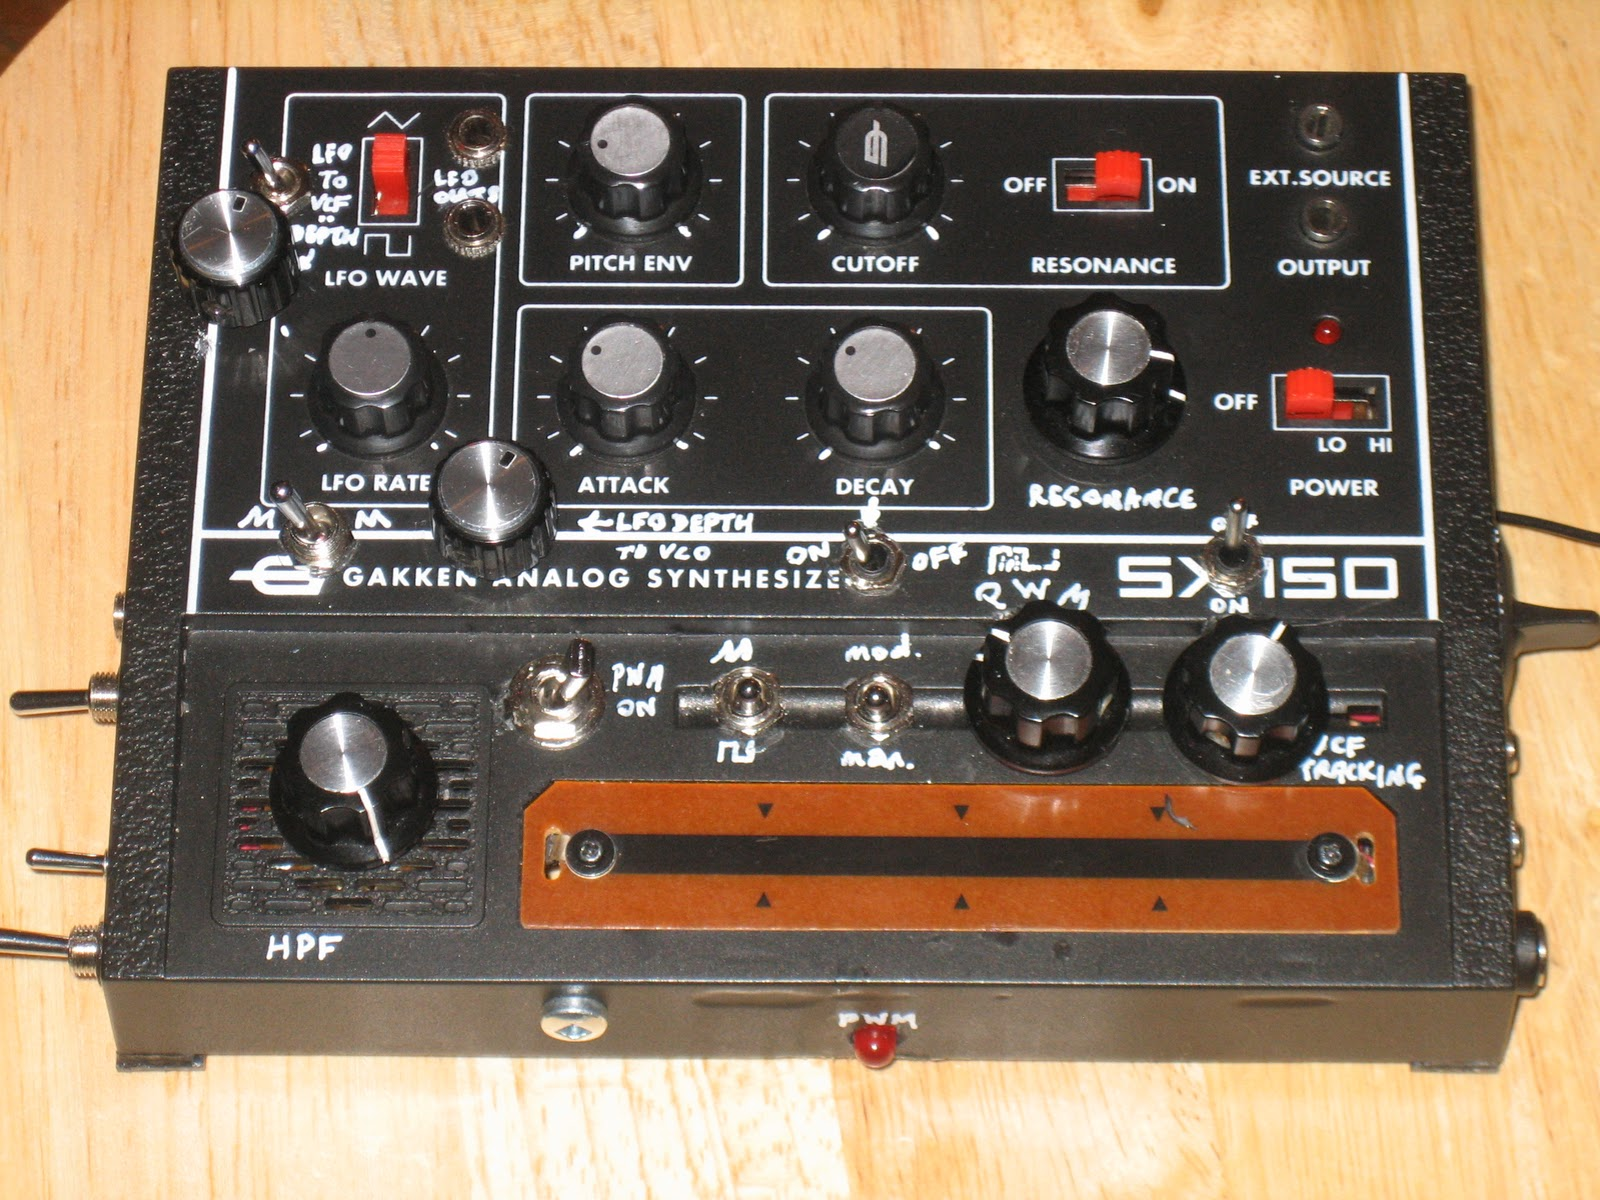 Only Mission Modified Gakken Sx 150 Hacks And Mods Easy To Use Fm Radio Receiver Heres The Result Of Several For